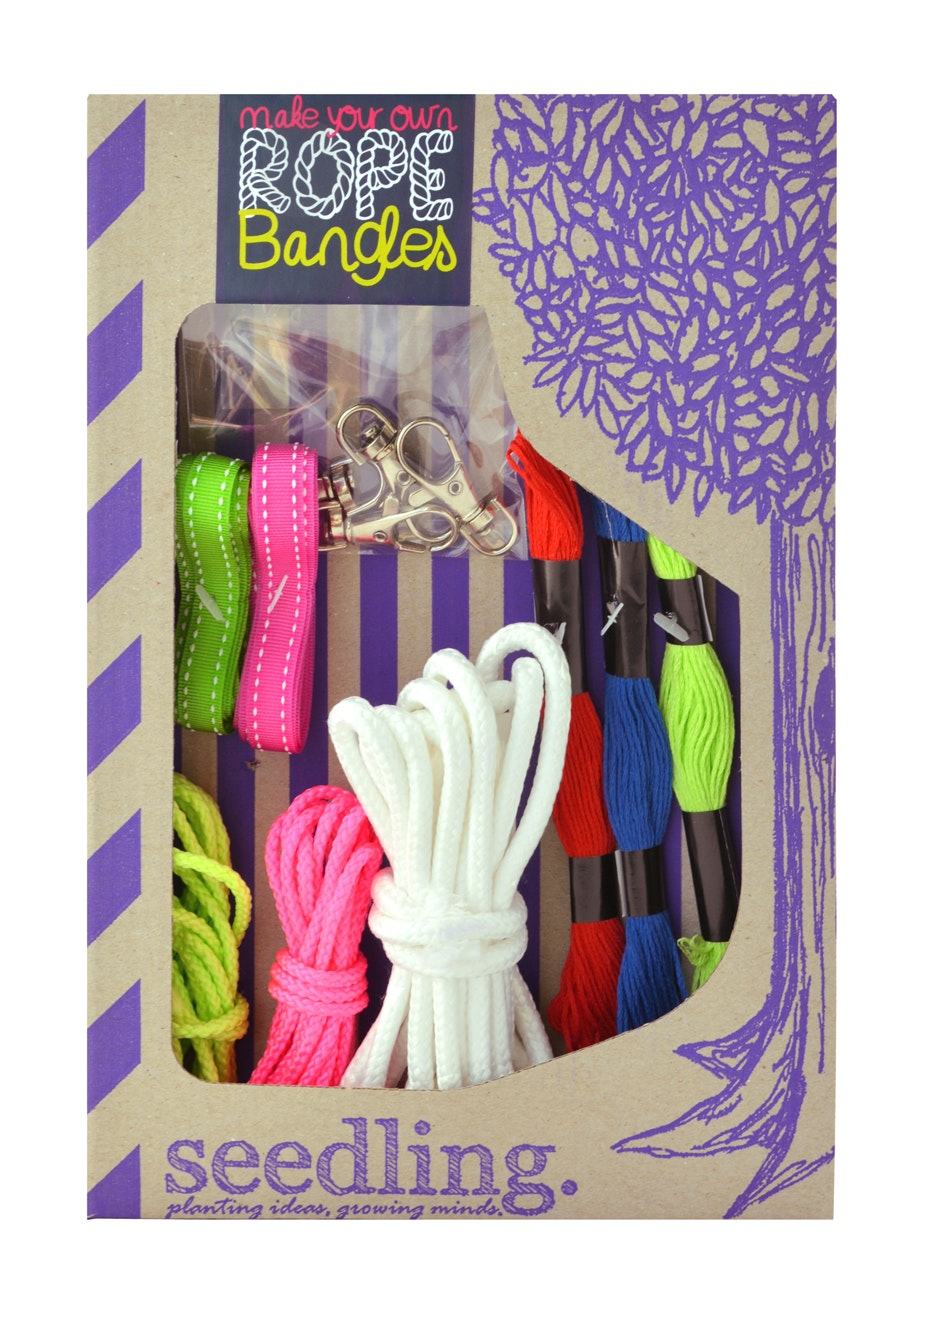 Seedling - Make your own Rope Bangles